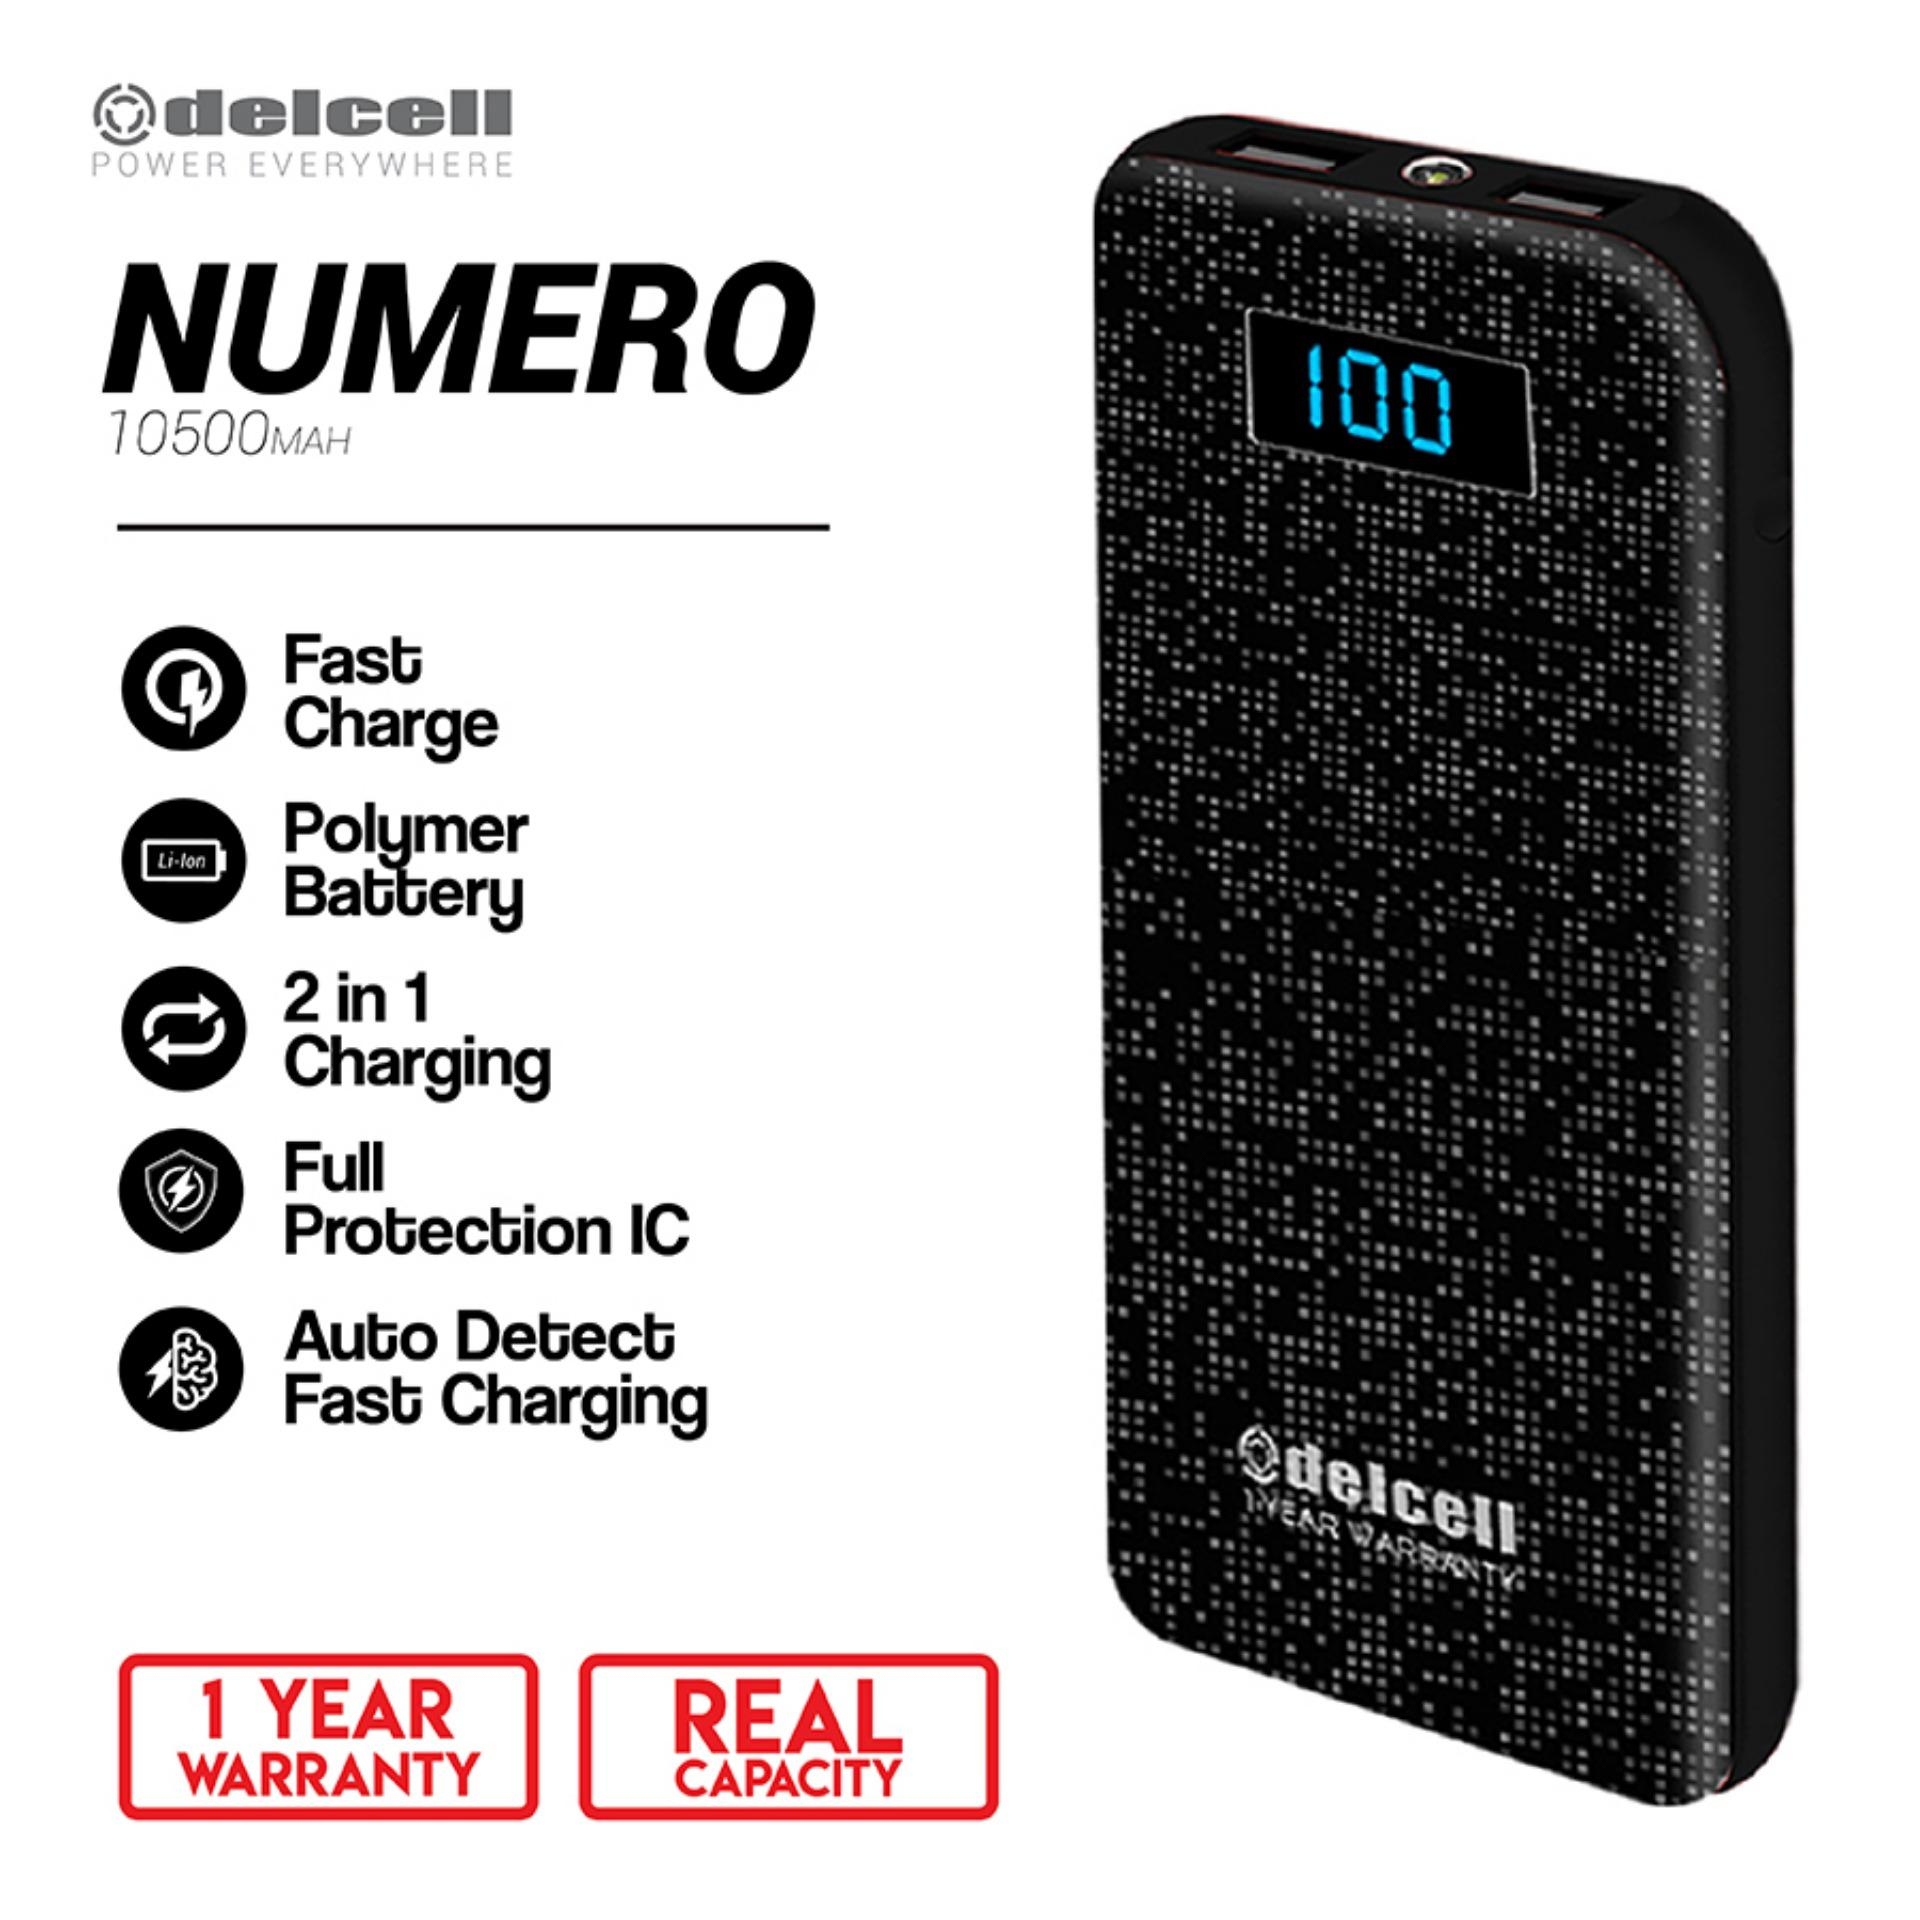 Jual Power Bank Terbaru Silicone Case Xiaomi Powerbank 5000 Mah Hitam Delcell 10500mah Numero Real Capacity Digital Display Slim Fast Charging Polymer Battery Garansi Resmi